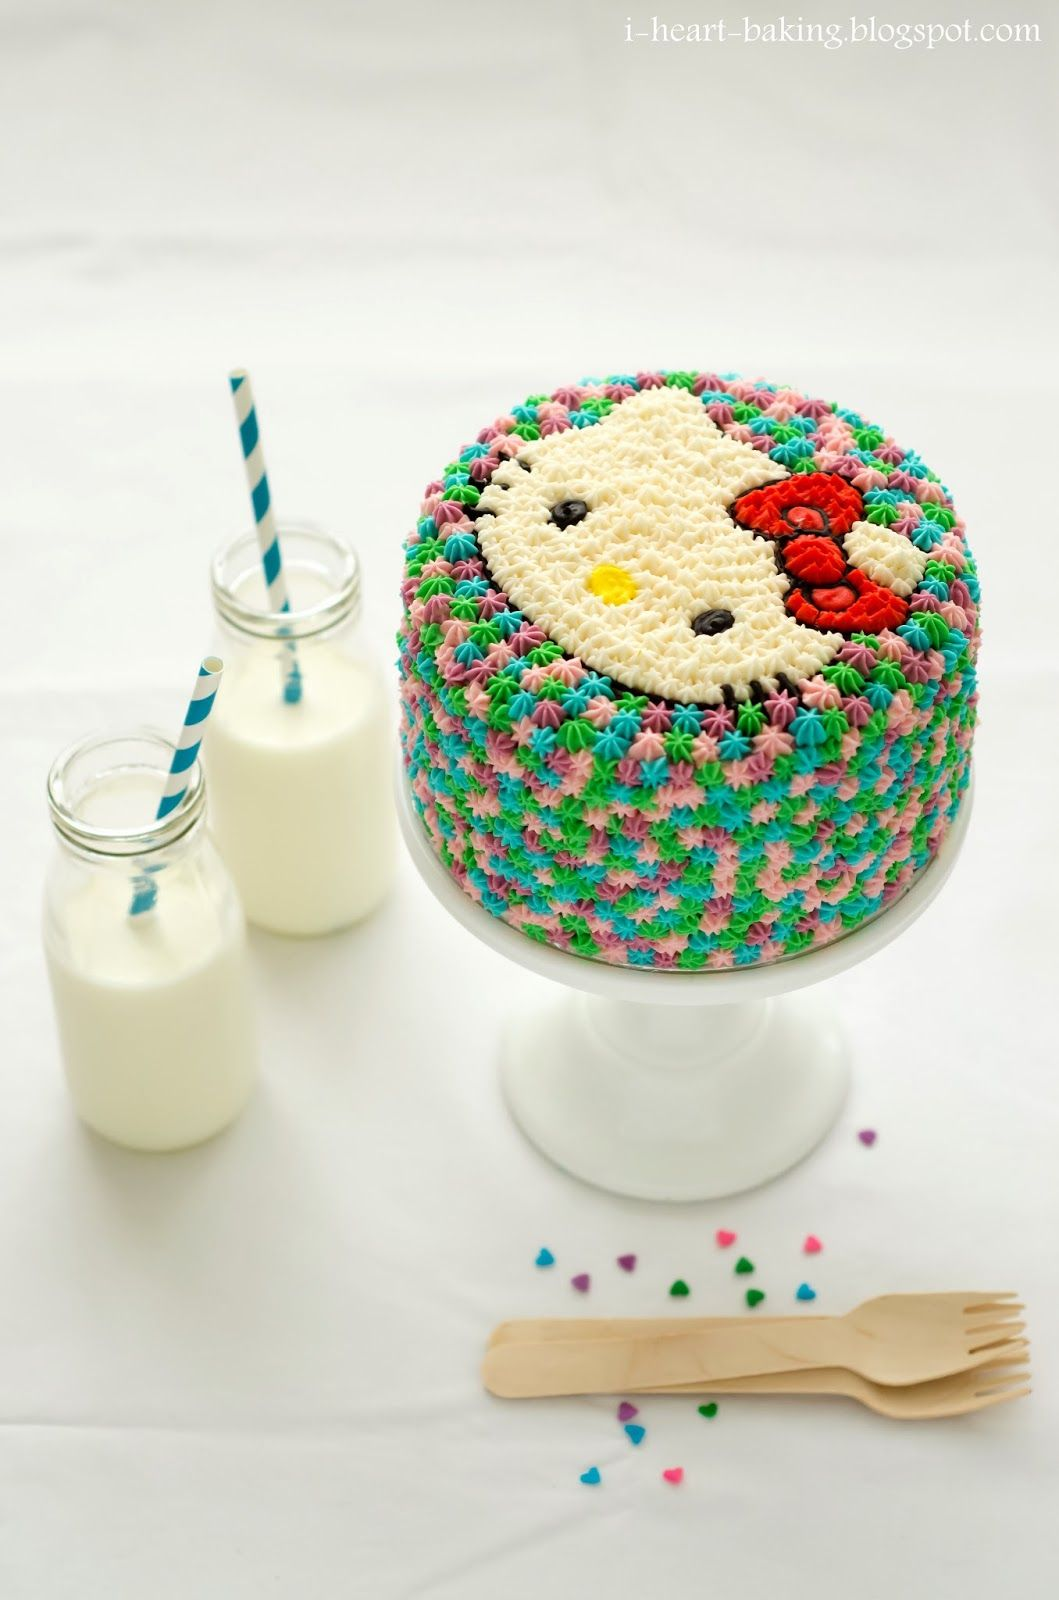 I Heart Baking Hello Kitty Pastel Pom Pom Birthday Cake